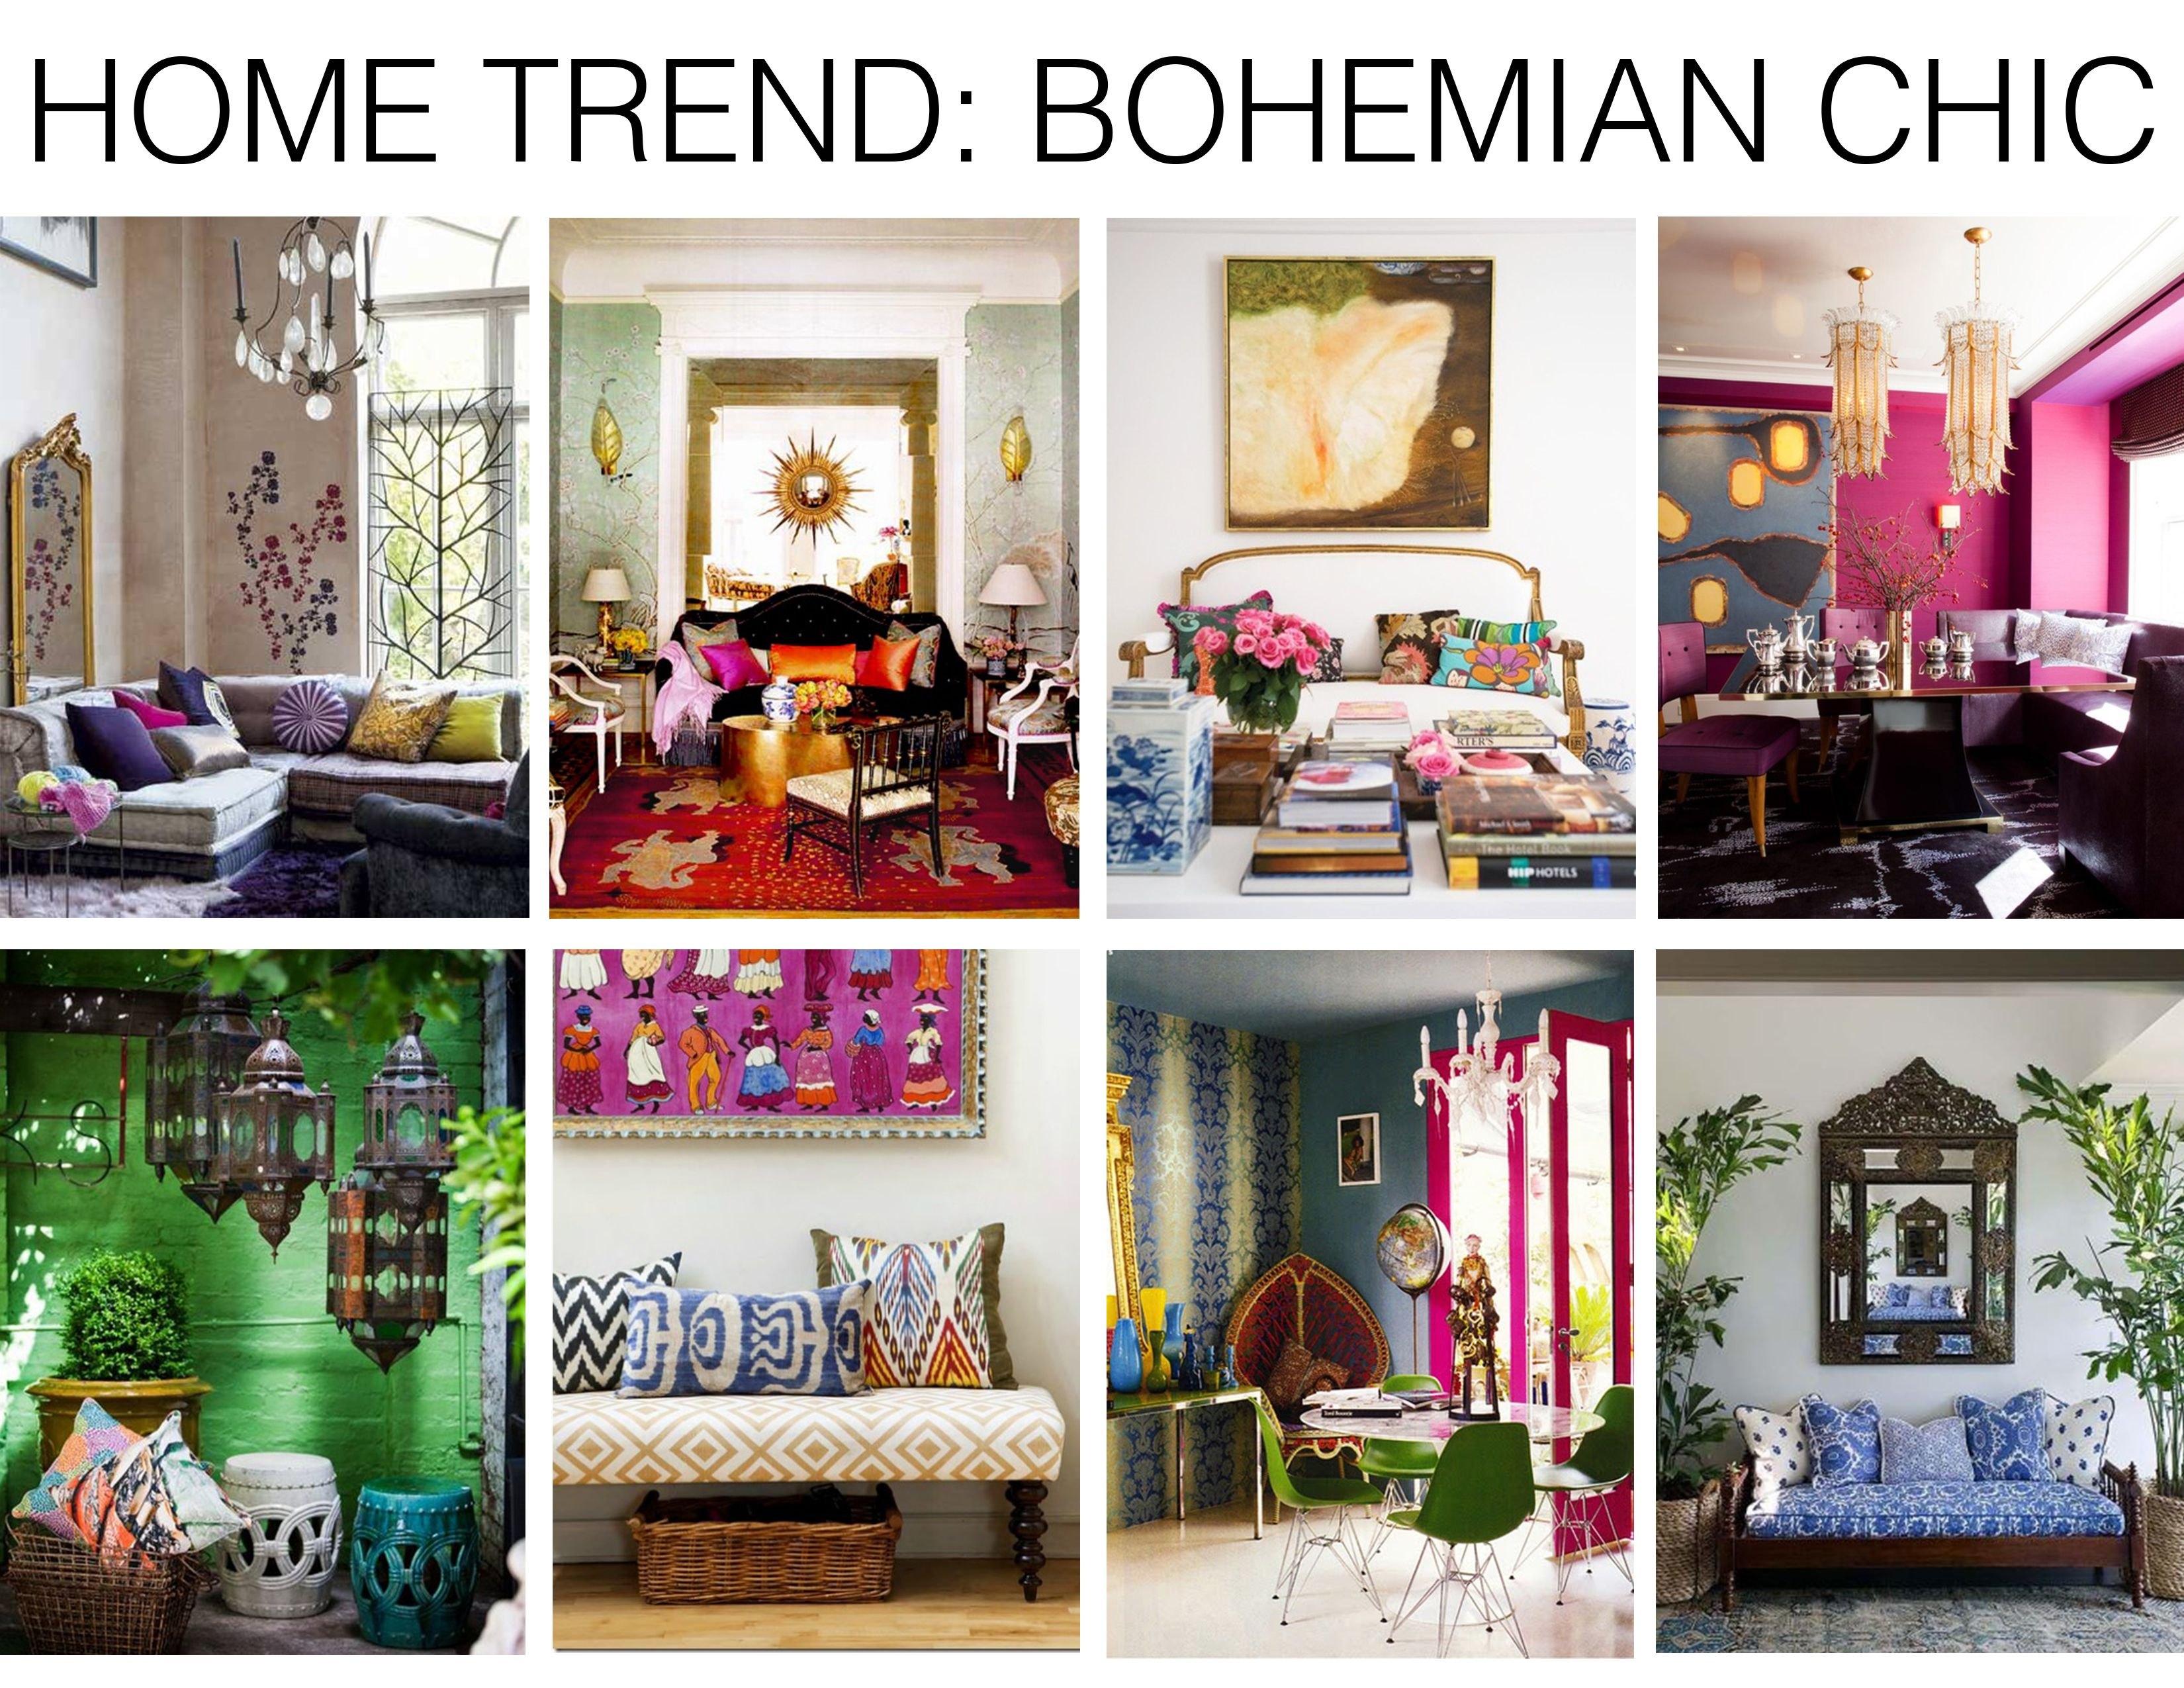 Home Trend : Bohemian Chic | Bohemian, Bohemian chic decor and ...